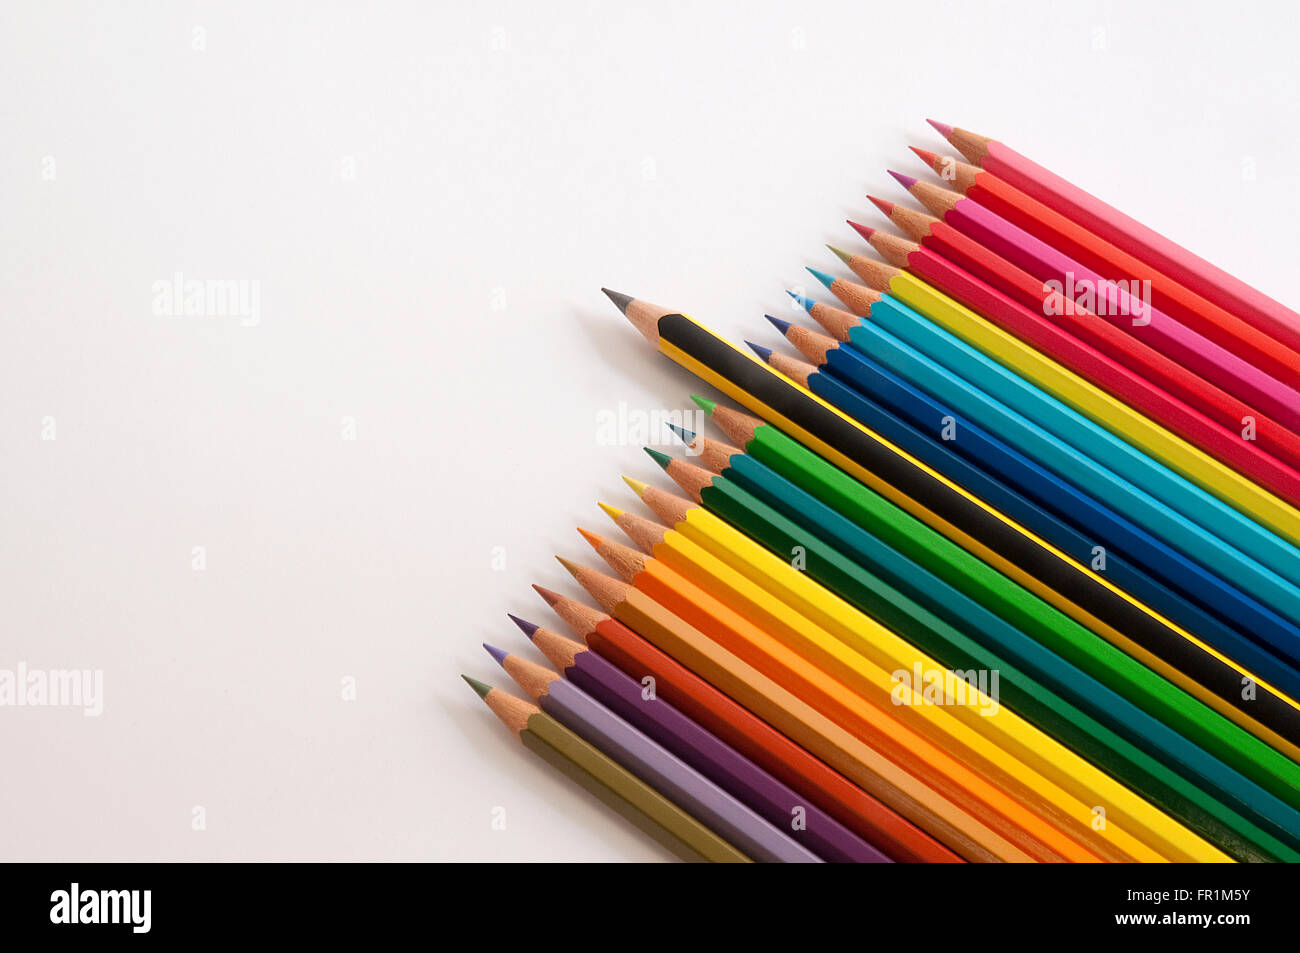 Graphite pencil sticking out from coloured pencils. - Stock Image